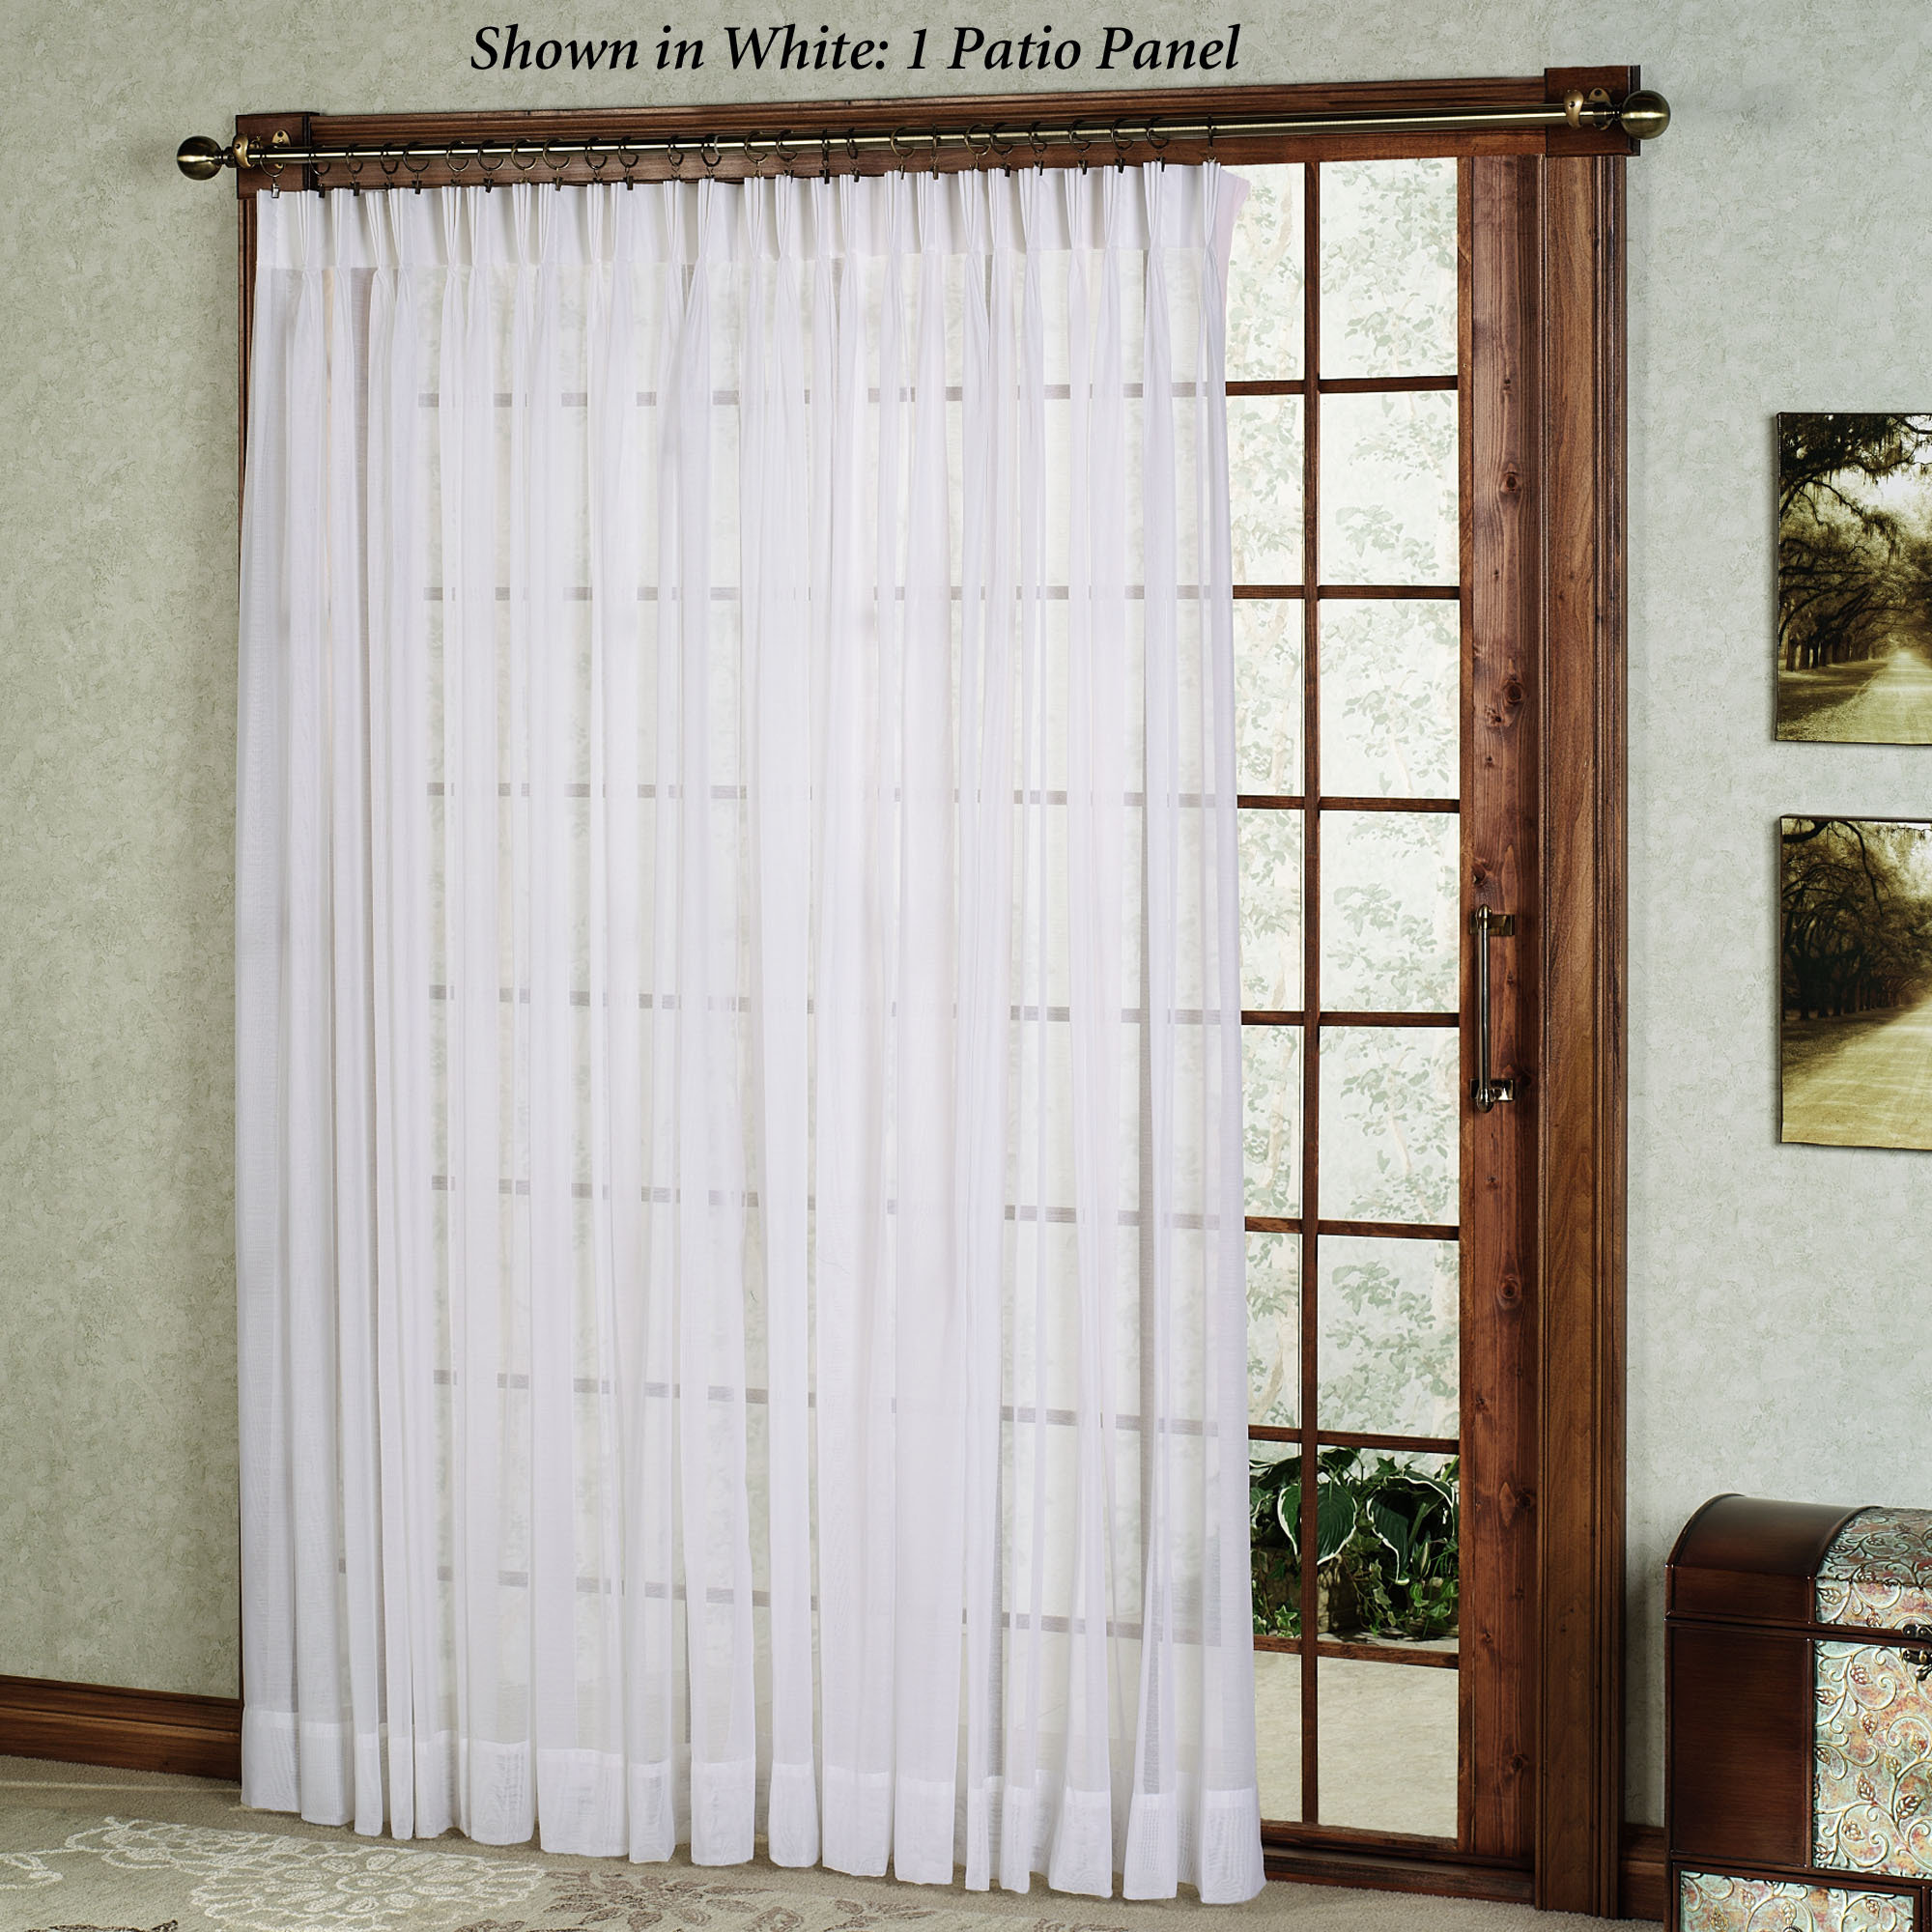 Le Meilleur Patio Door Curtain Ideas Homesfeed Ce Mois Ci